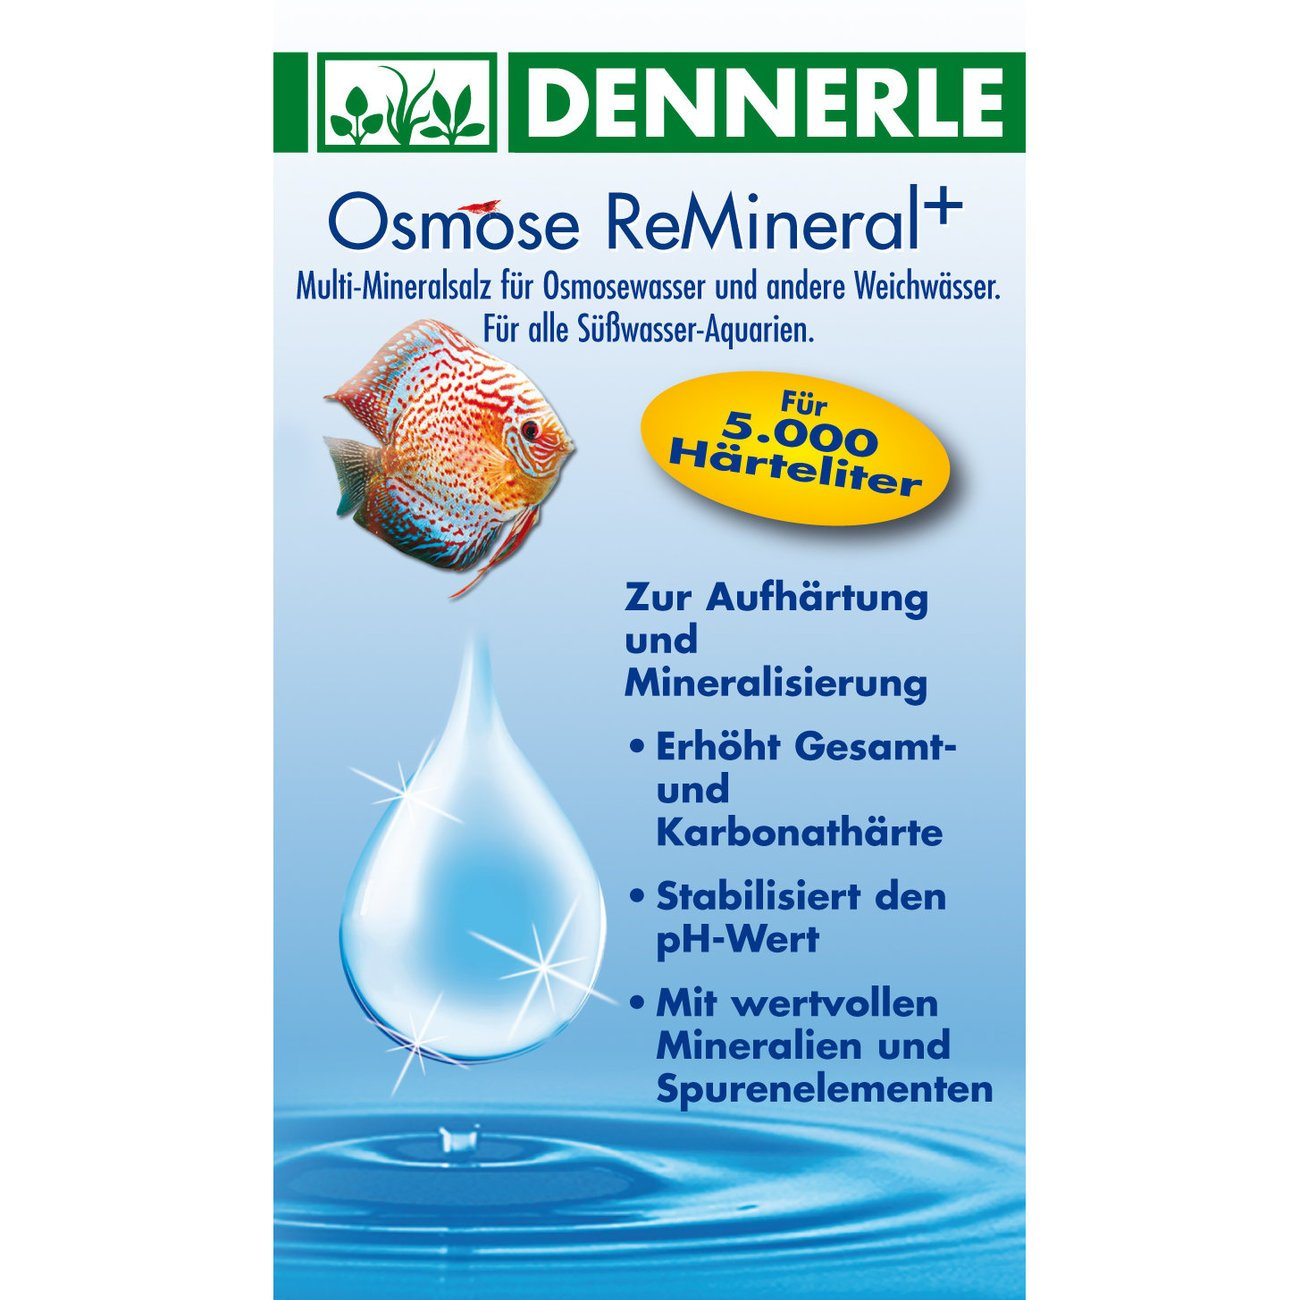 Dennerle Osmose ReMineral+ Preview Image